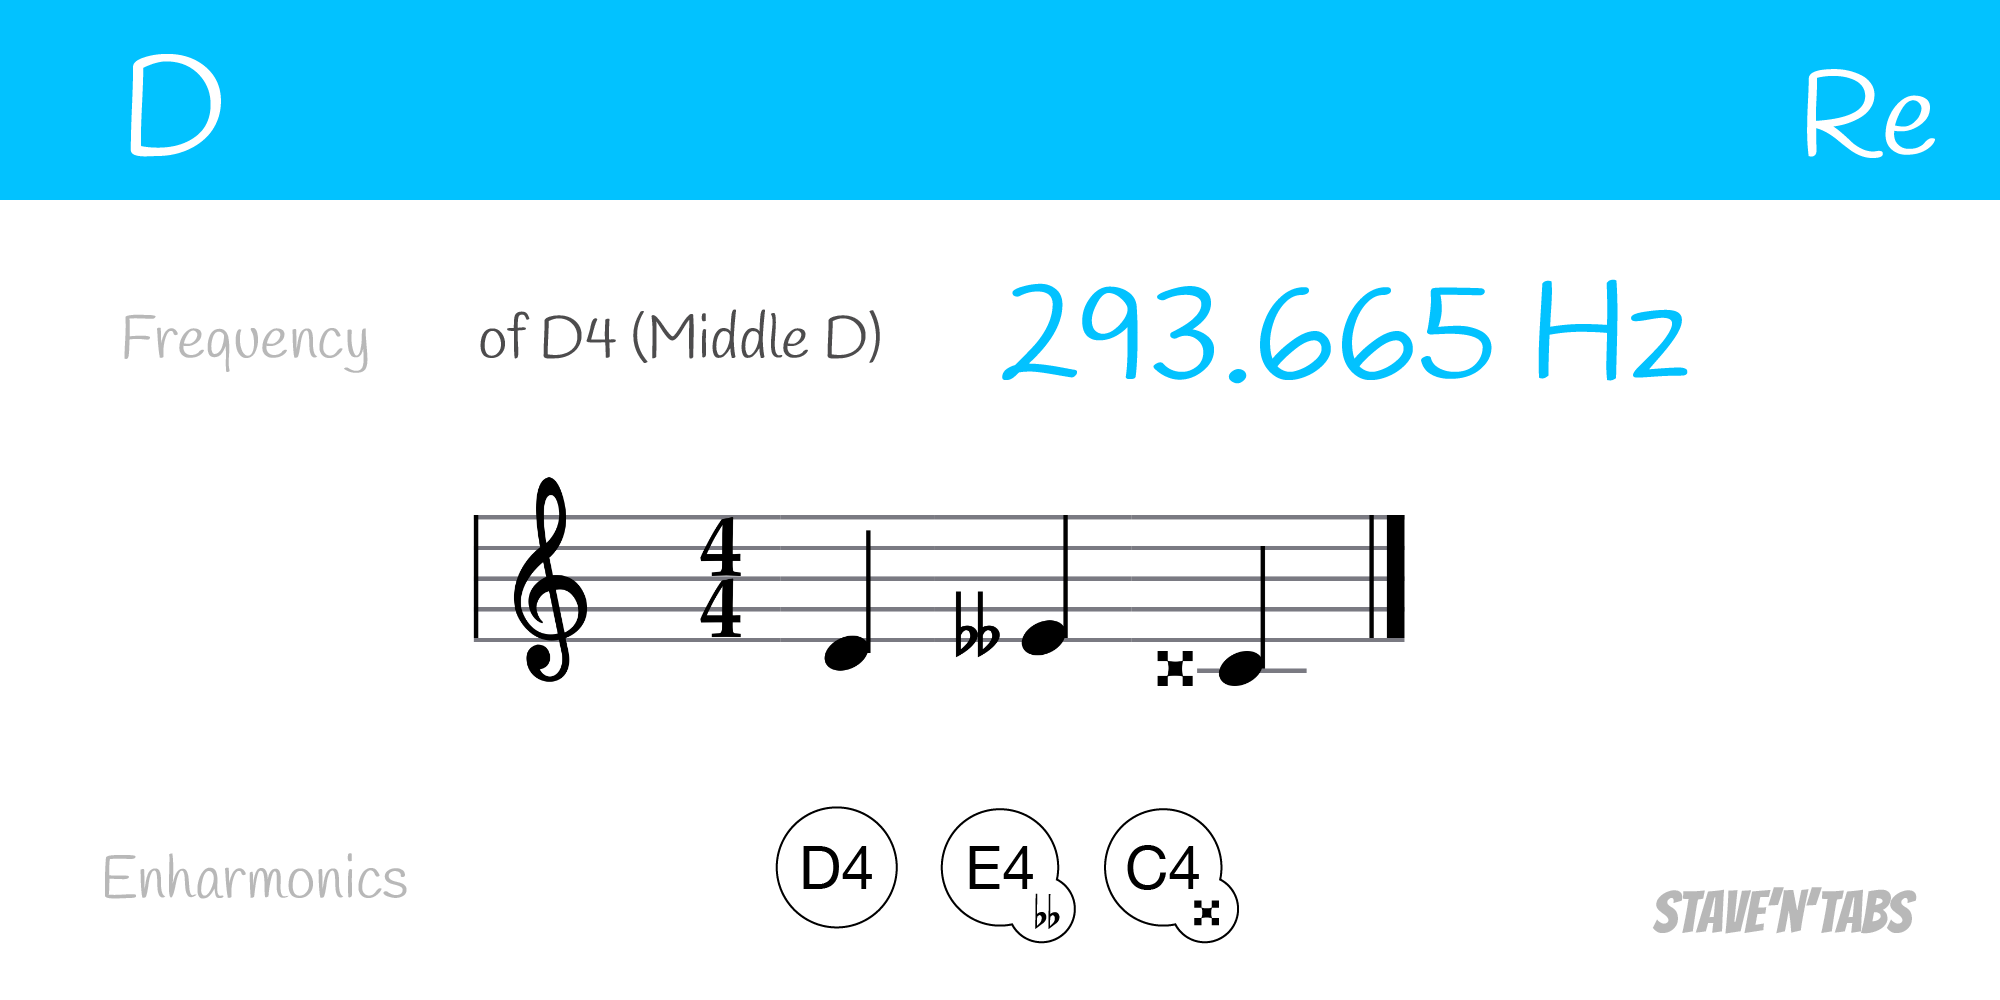 Enharmonic equivalents for the note D